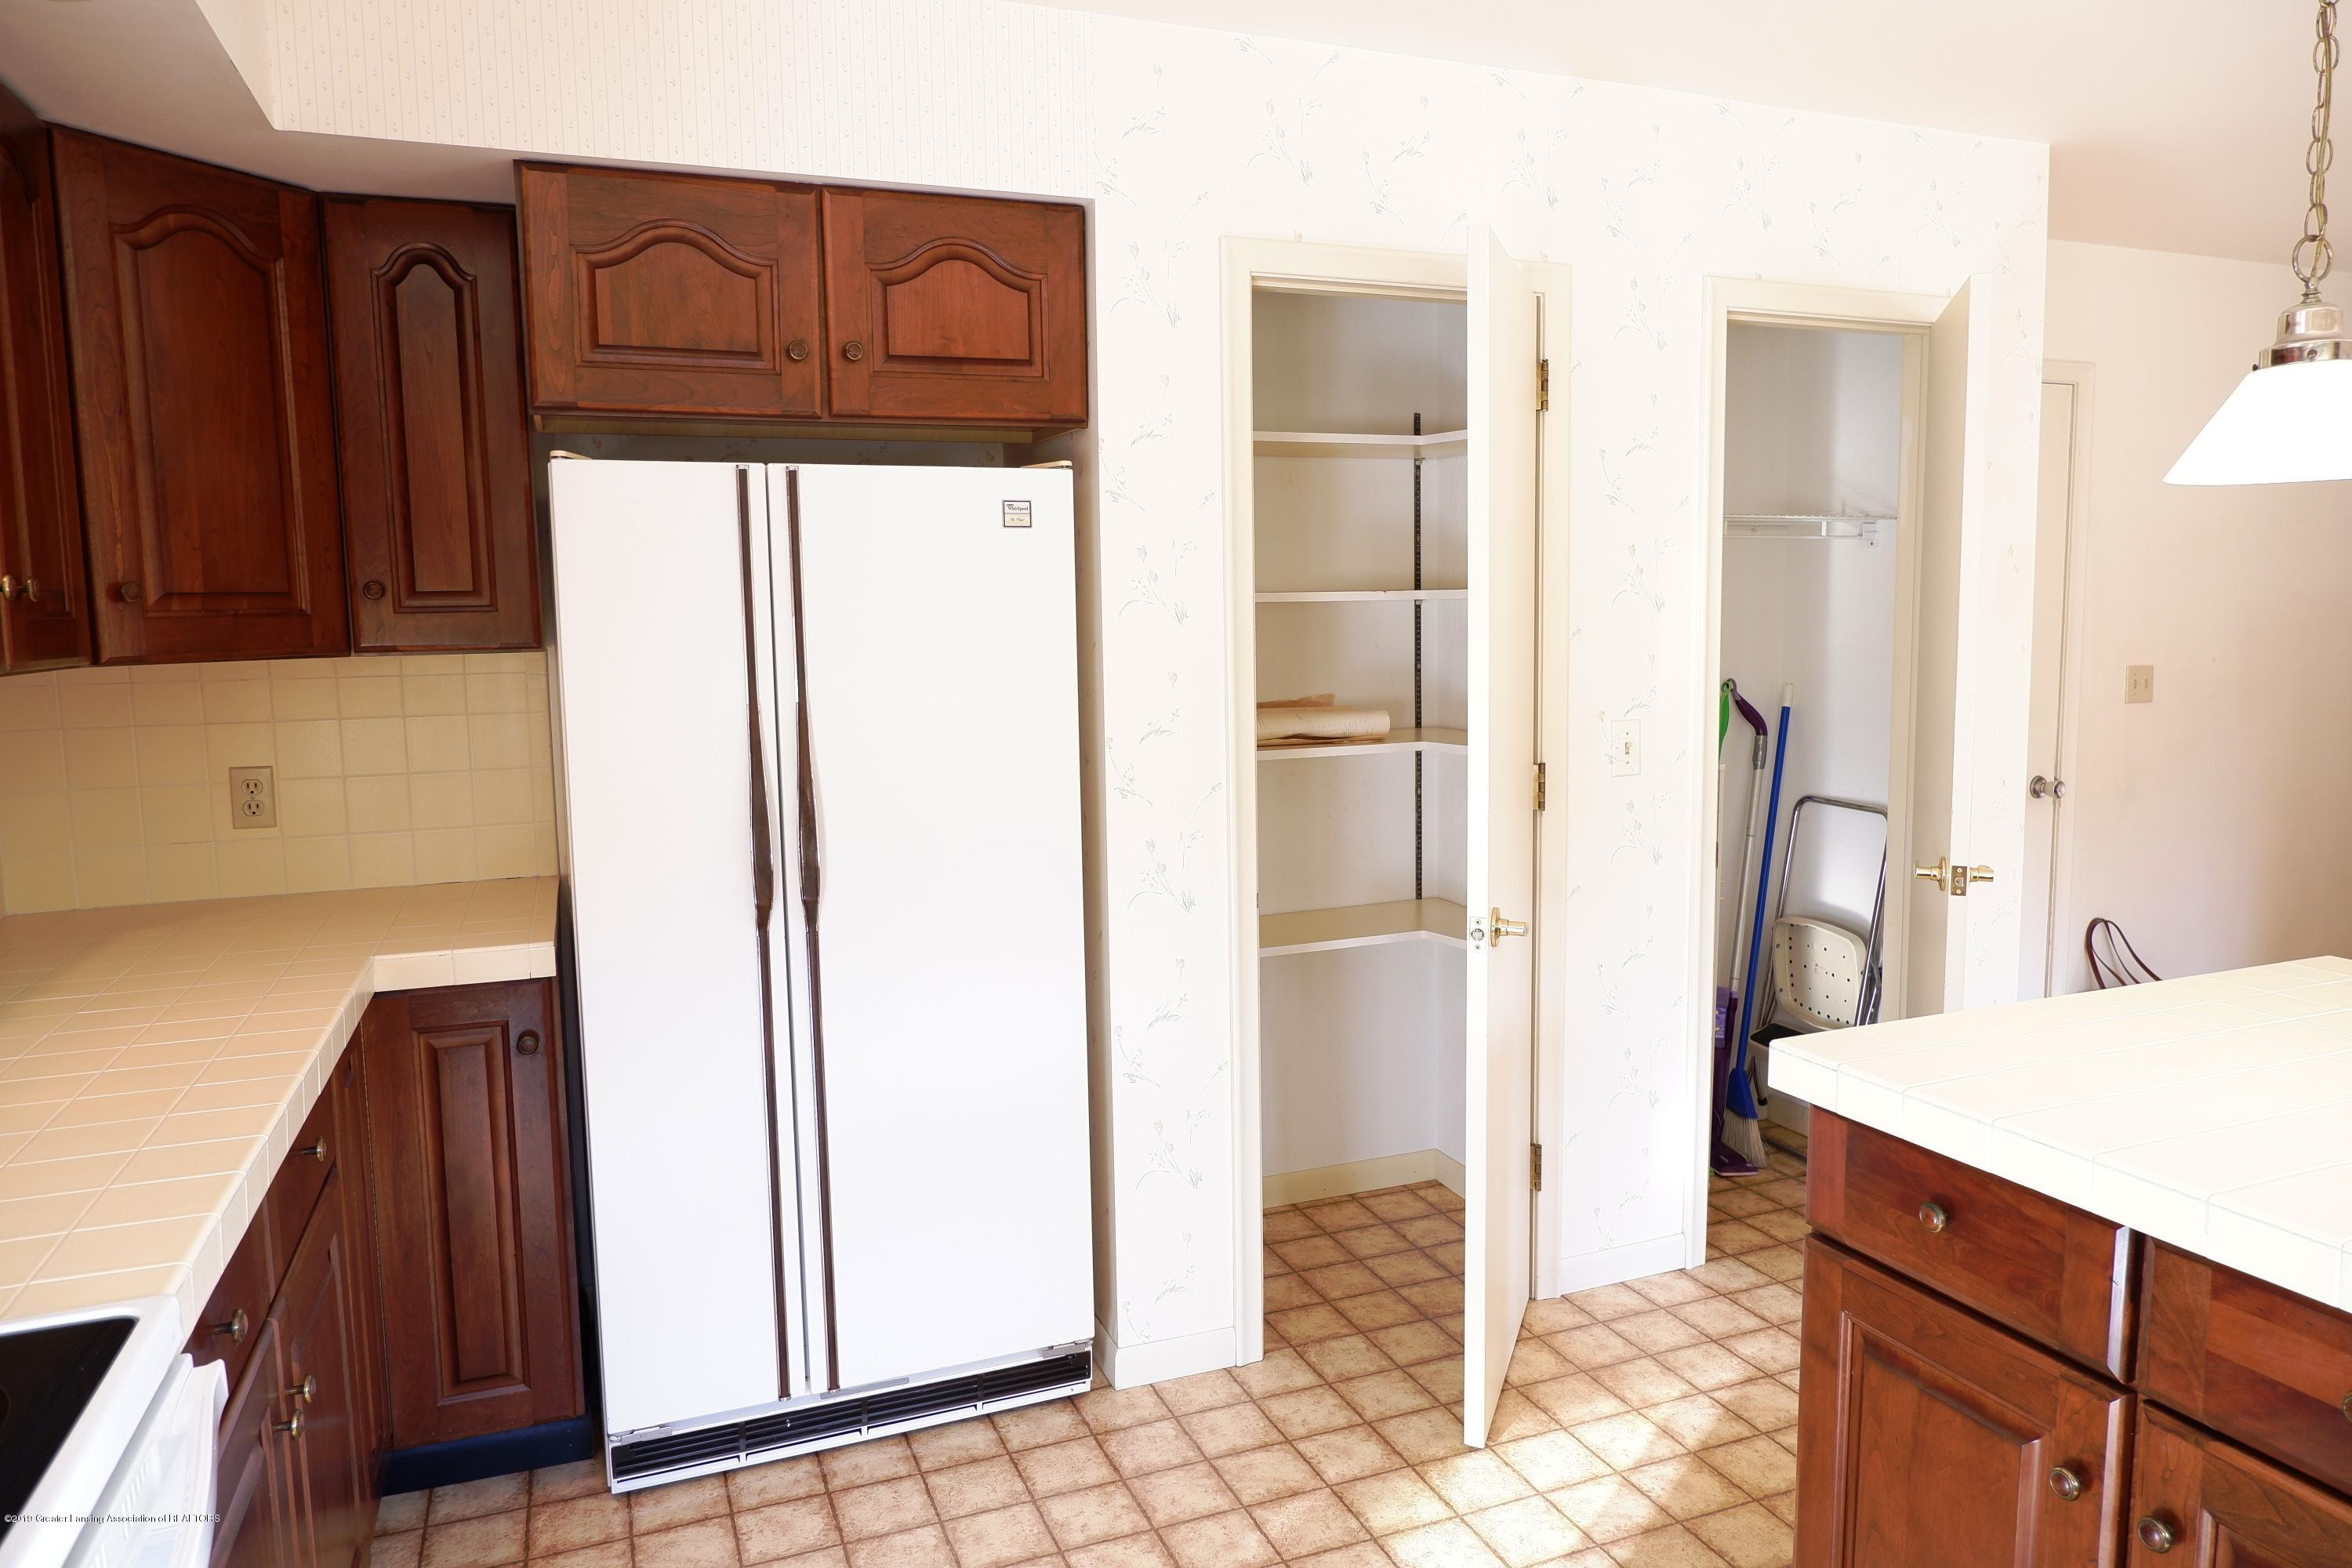 8933 W Scenic Lake Dr - Pantry & cleaning closets - 18